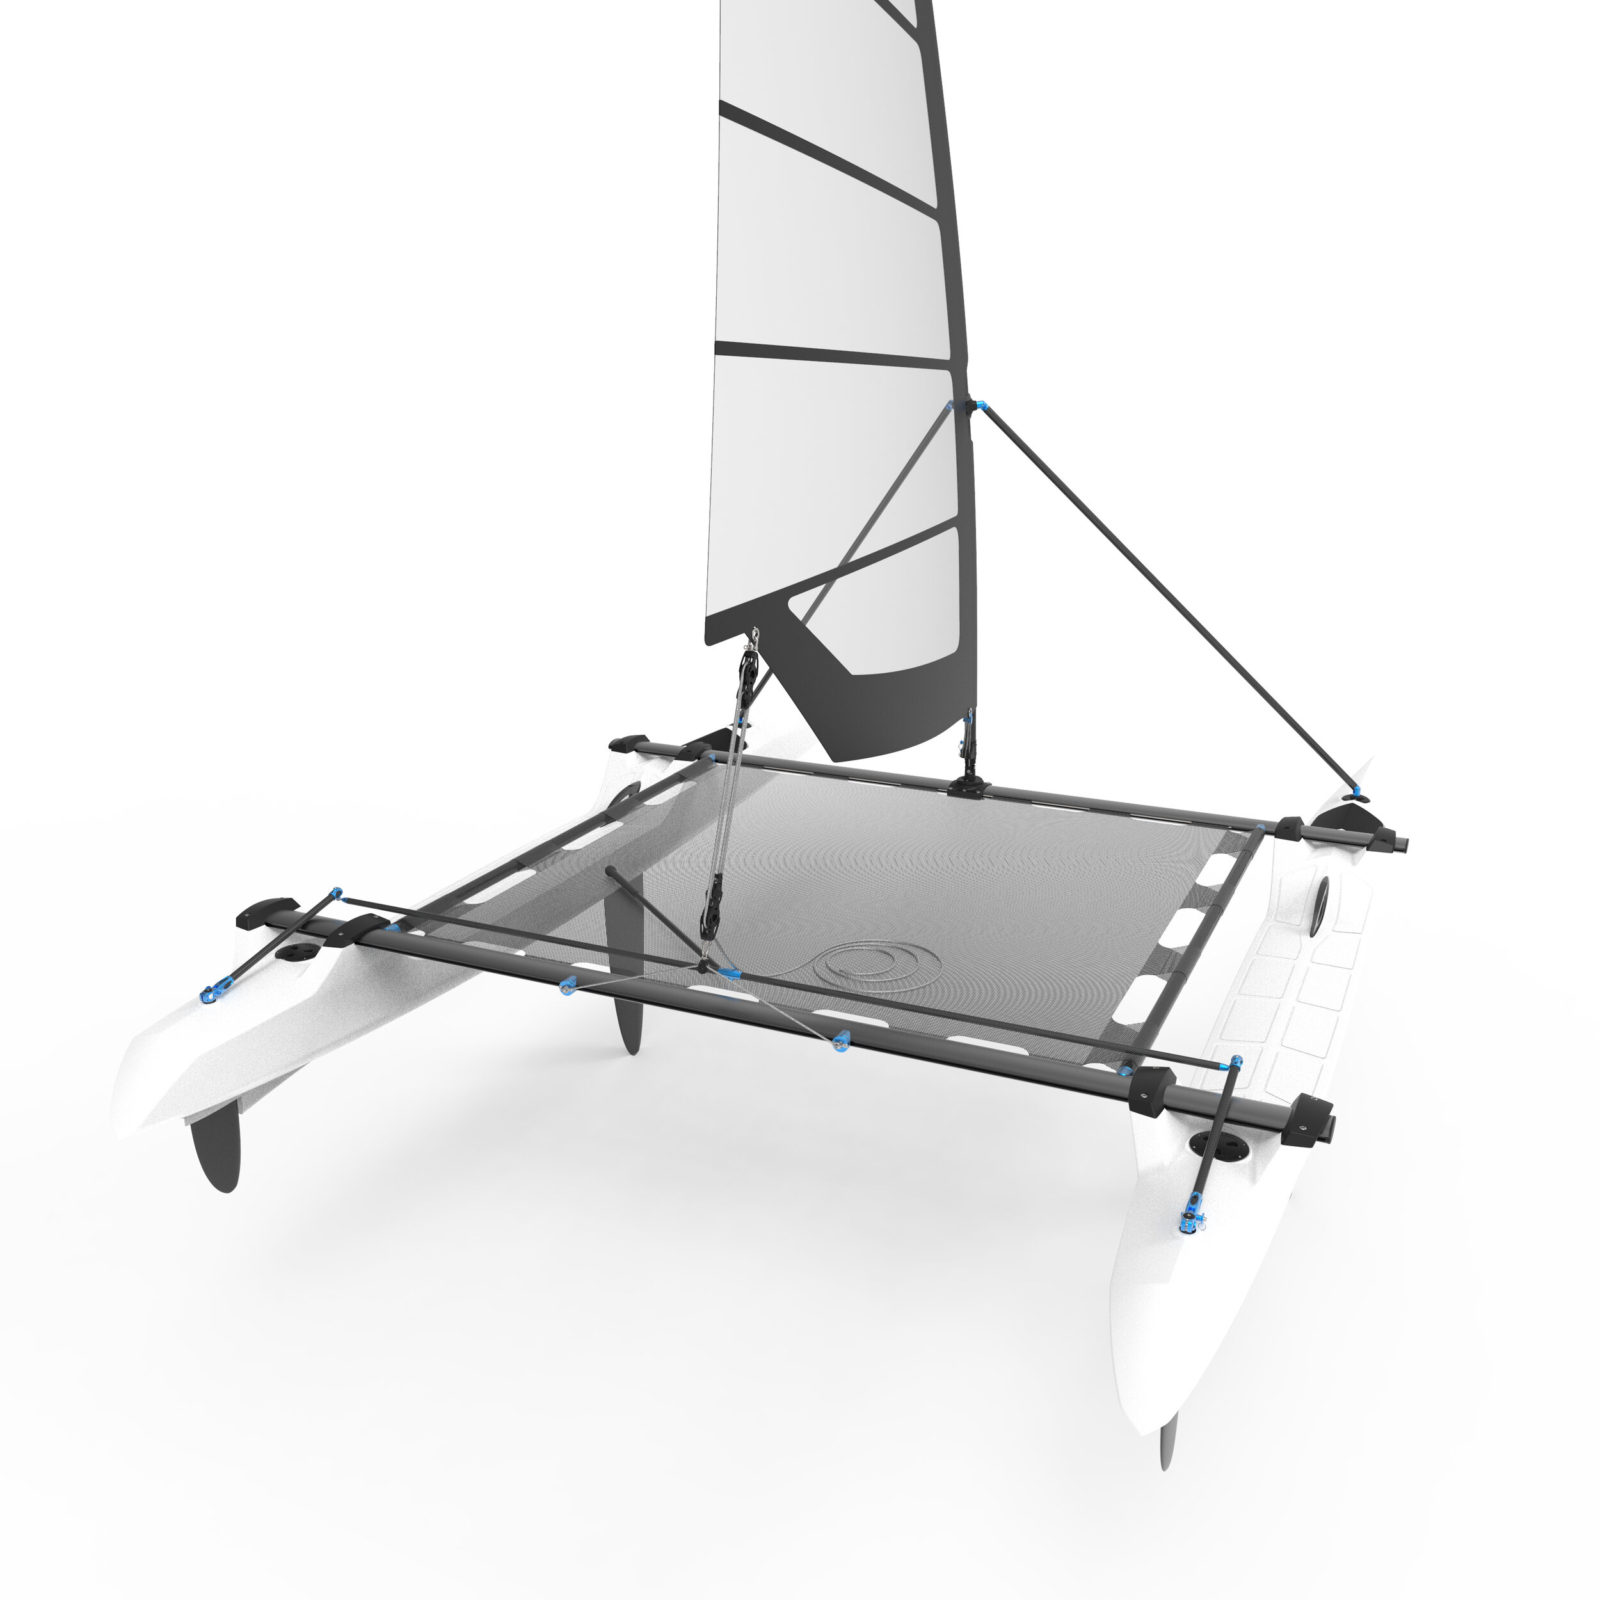 cheap-and-modular-sailboat-design-aims-to-reduce-world's-ocean-plastic-content